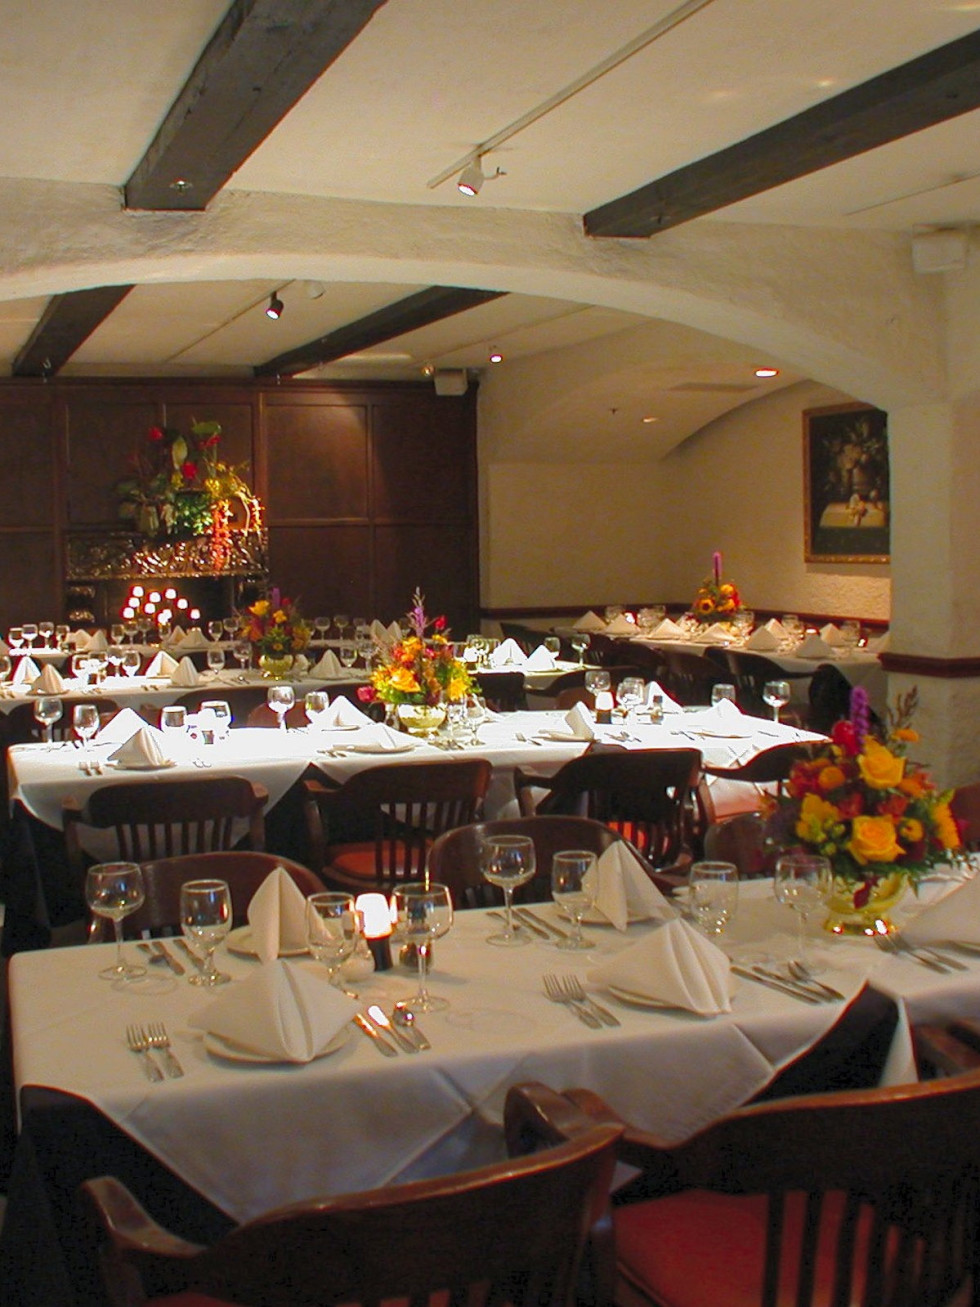 Places-Food-Churrascos-Westchase-interior